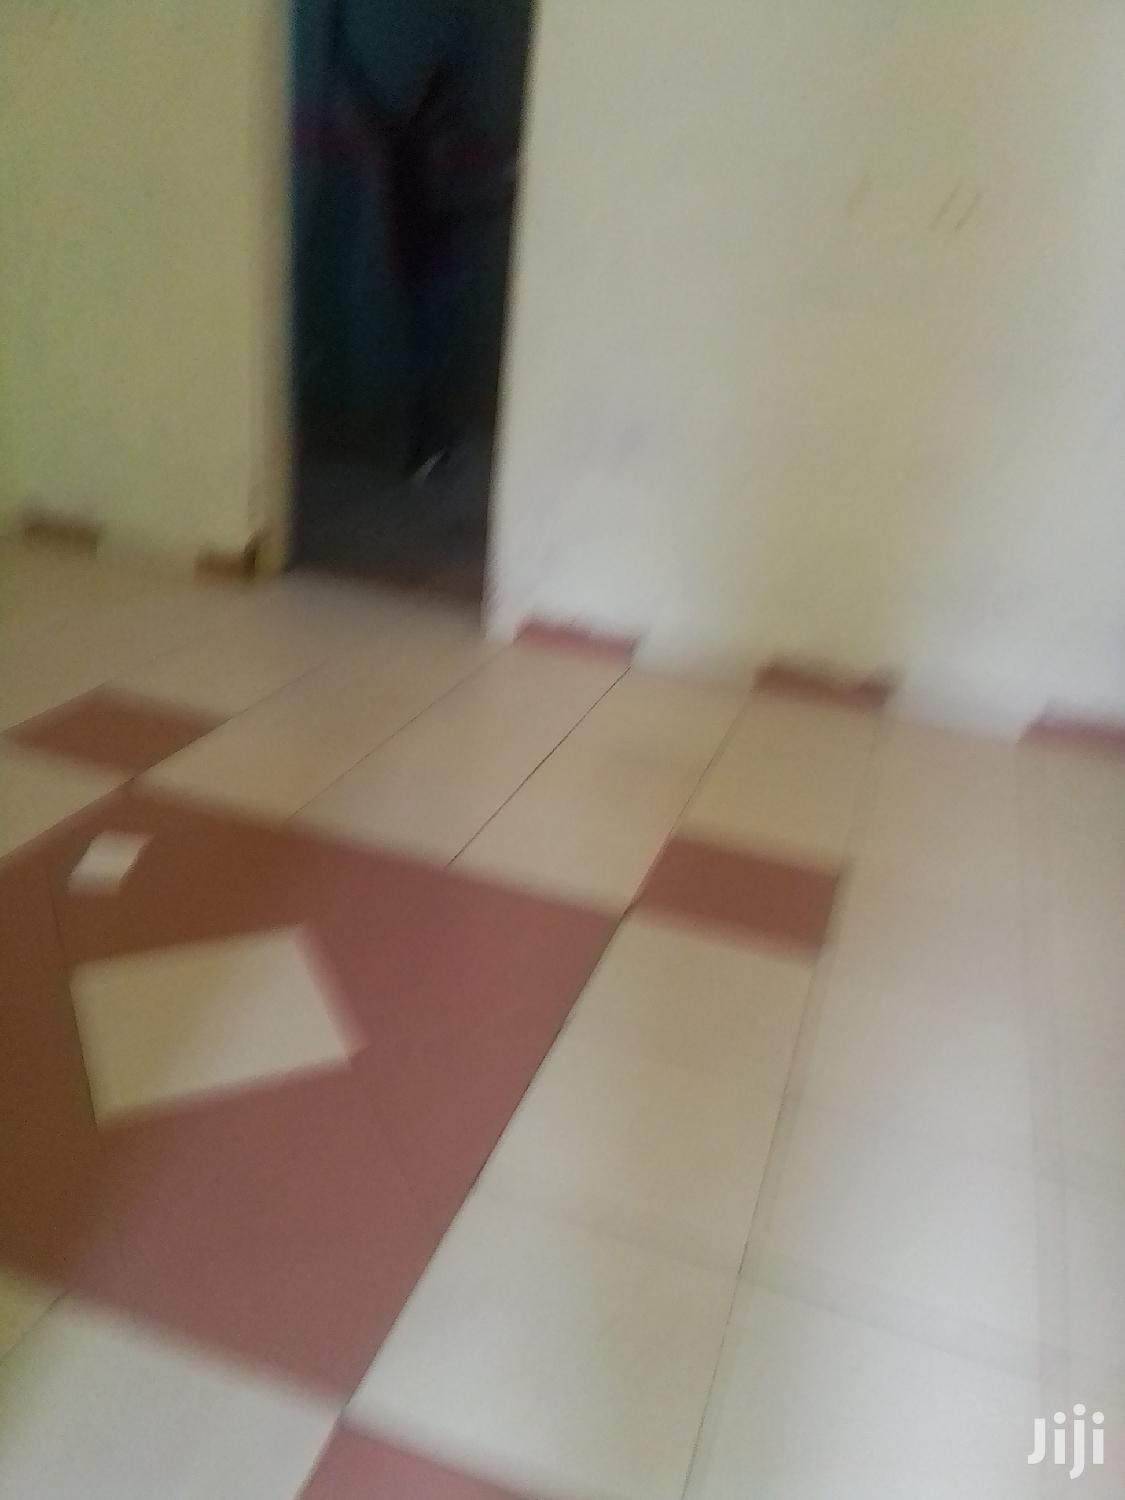 Chamber and Hall Self Contain | Houses & Apartments For Rent for sale in Achimota, Greater Accra, Ghana